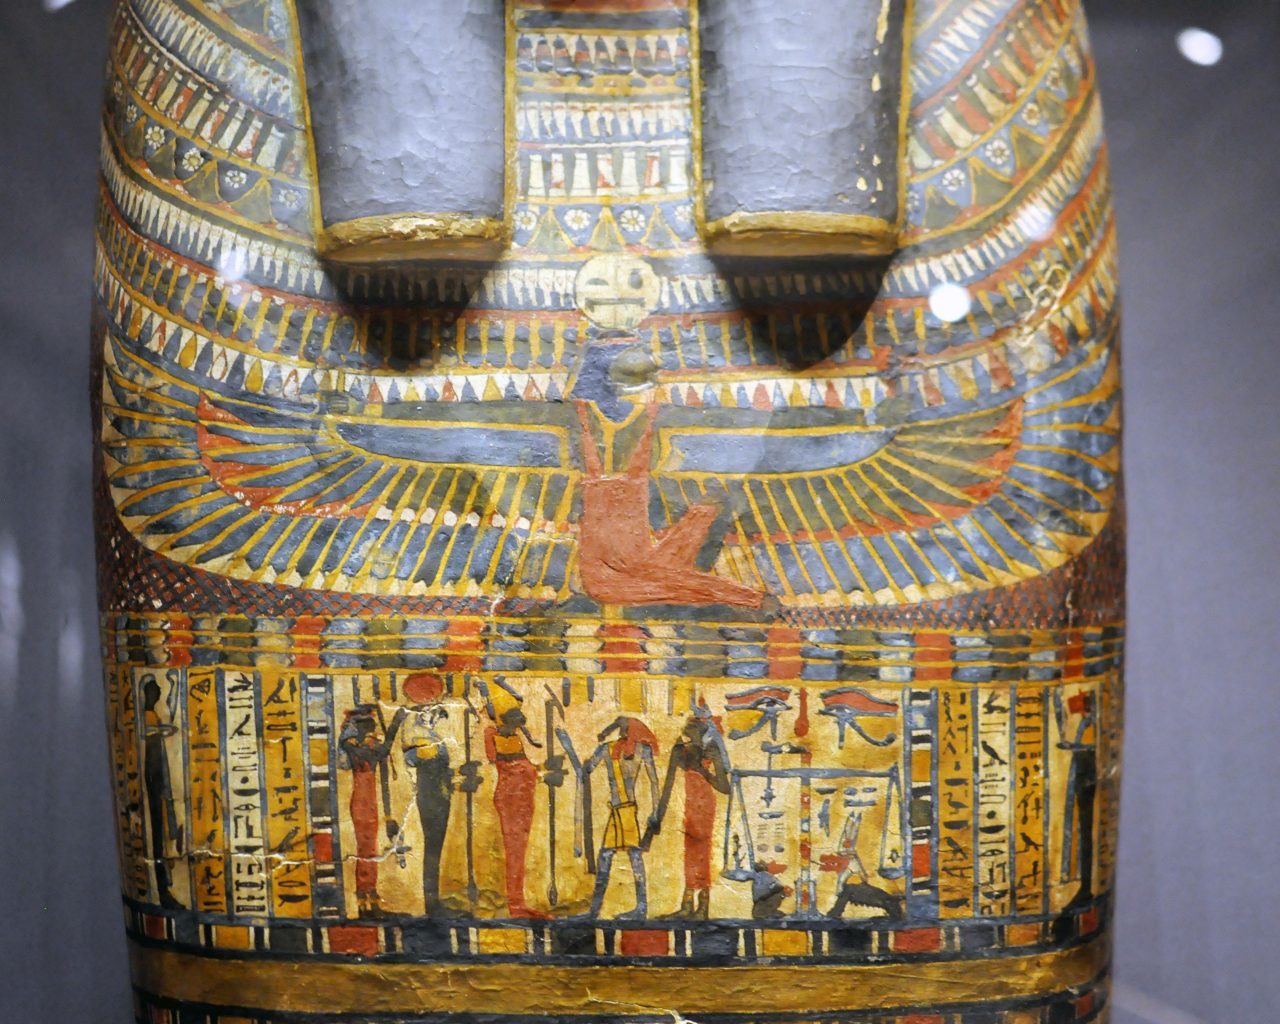 Sarcophagus Painting Decoration In Egyptian Mummy Room At